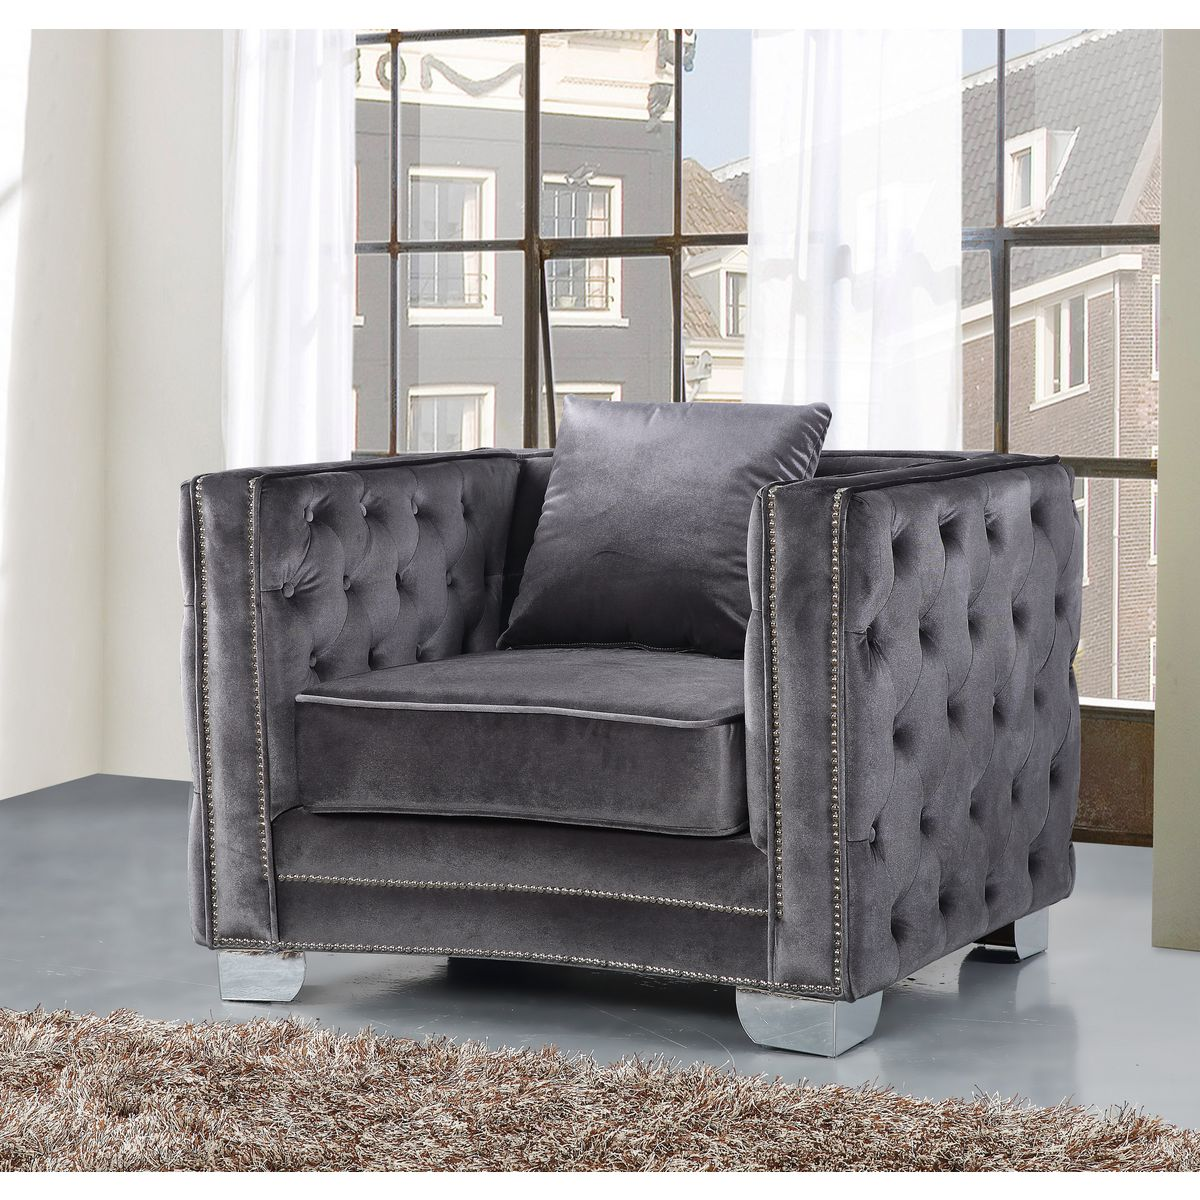 Reese Grey Velvet Arm Chair W Tufted Back Arms On Metal Legs By Meridian Furniture